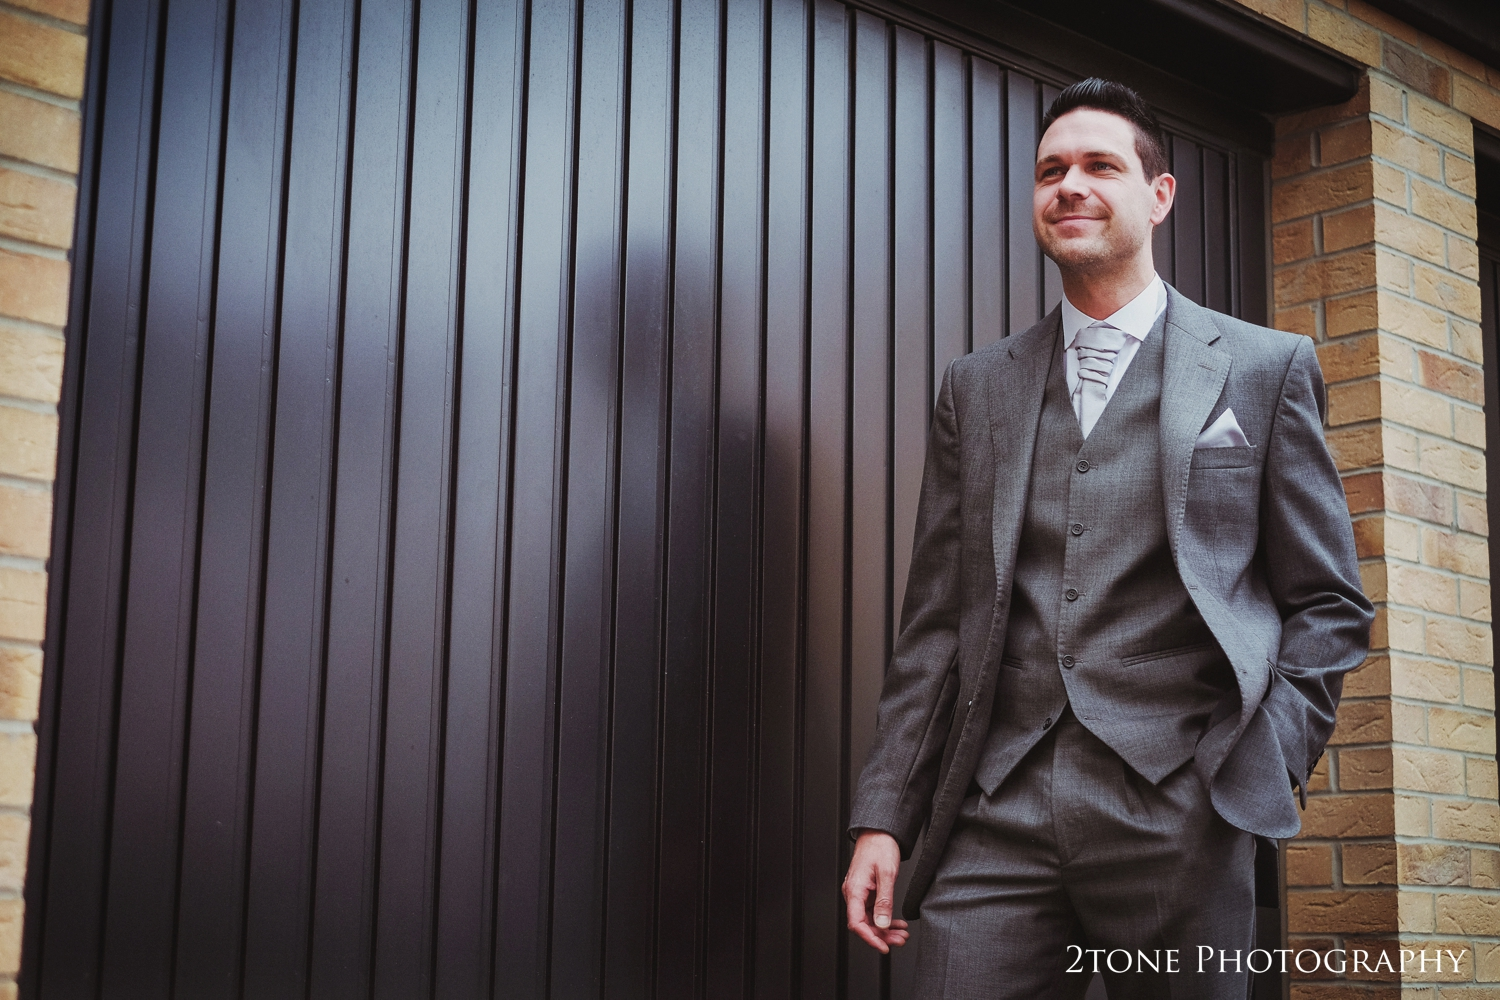 Groom's portrait for wedding at Doxford Hall.  Wedding Photography by Durham and Newcastle wedding photographers www.2tonephotography.co.uk